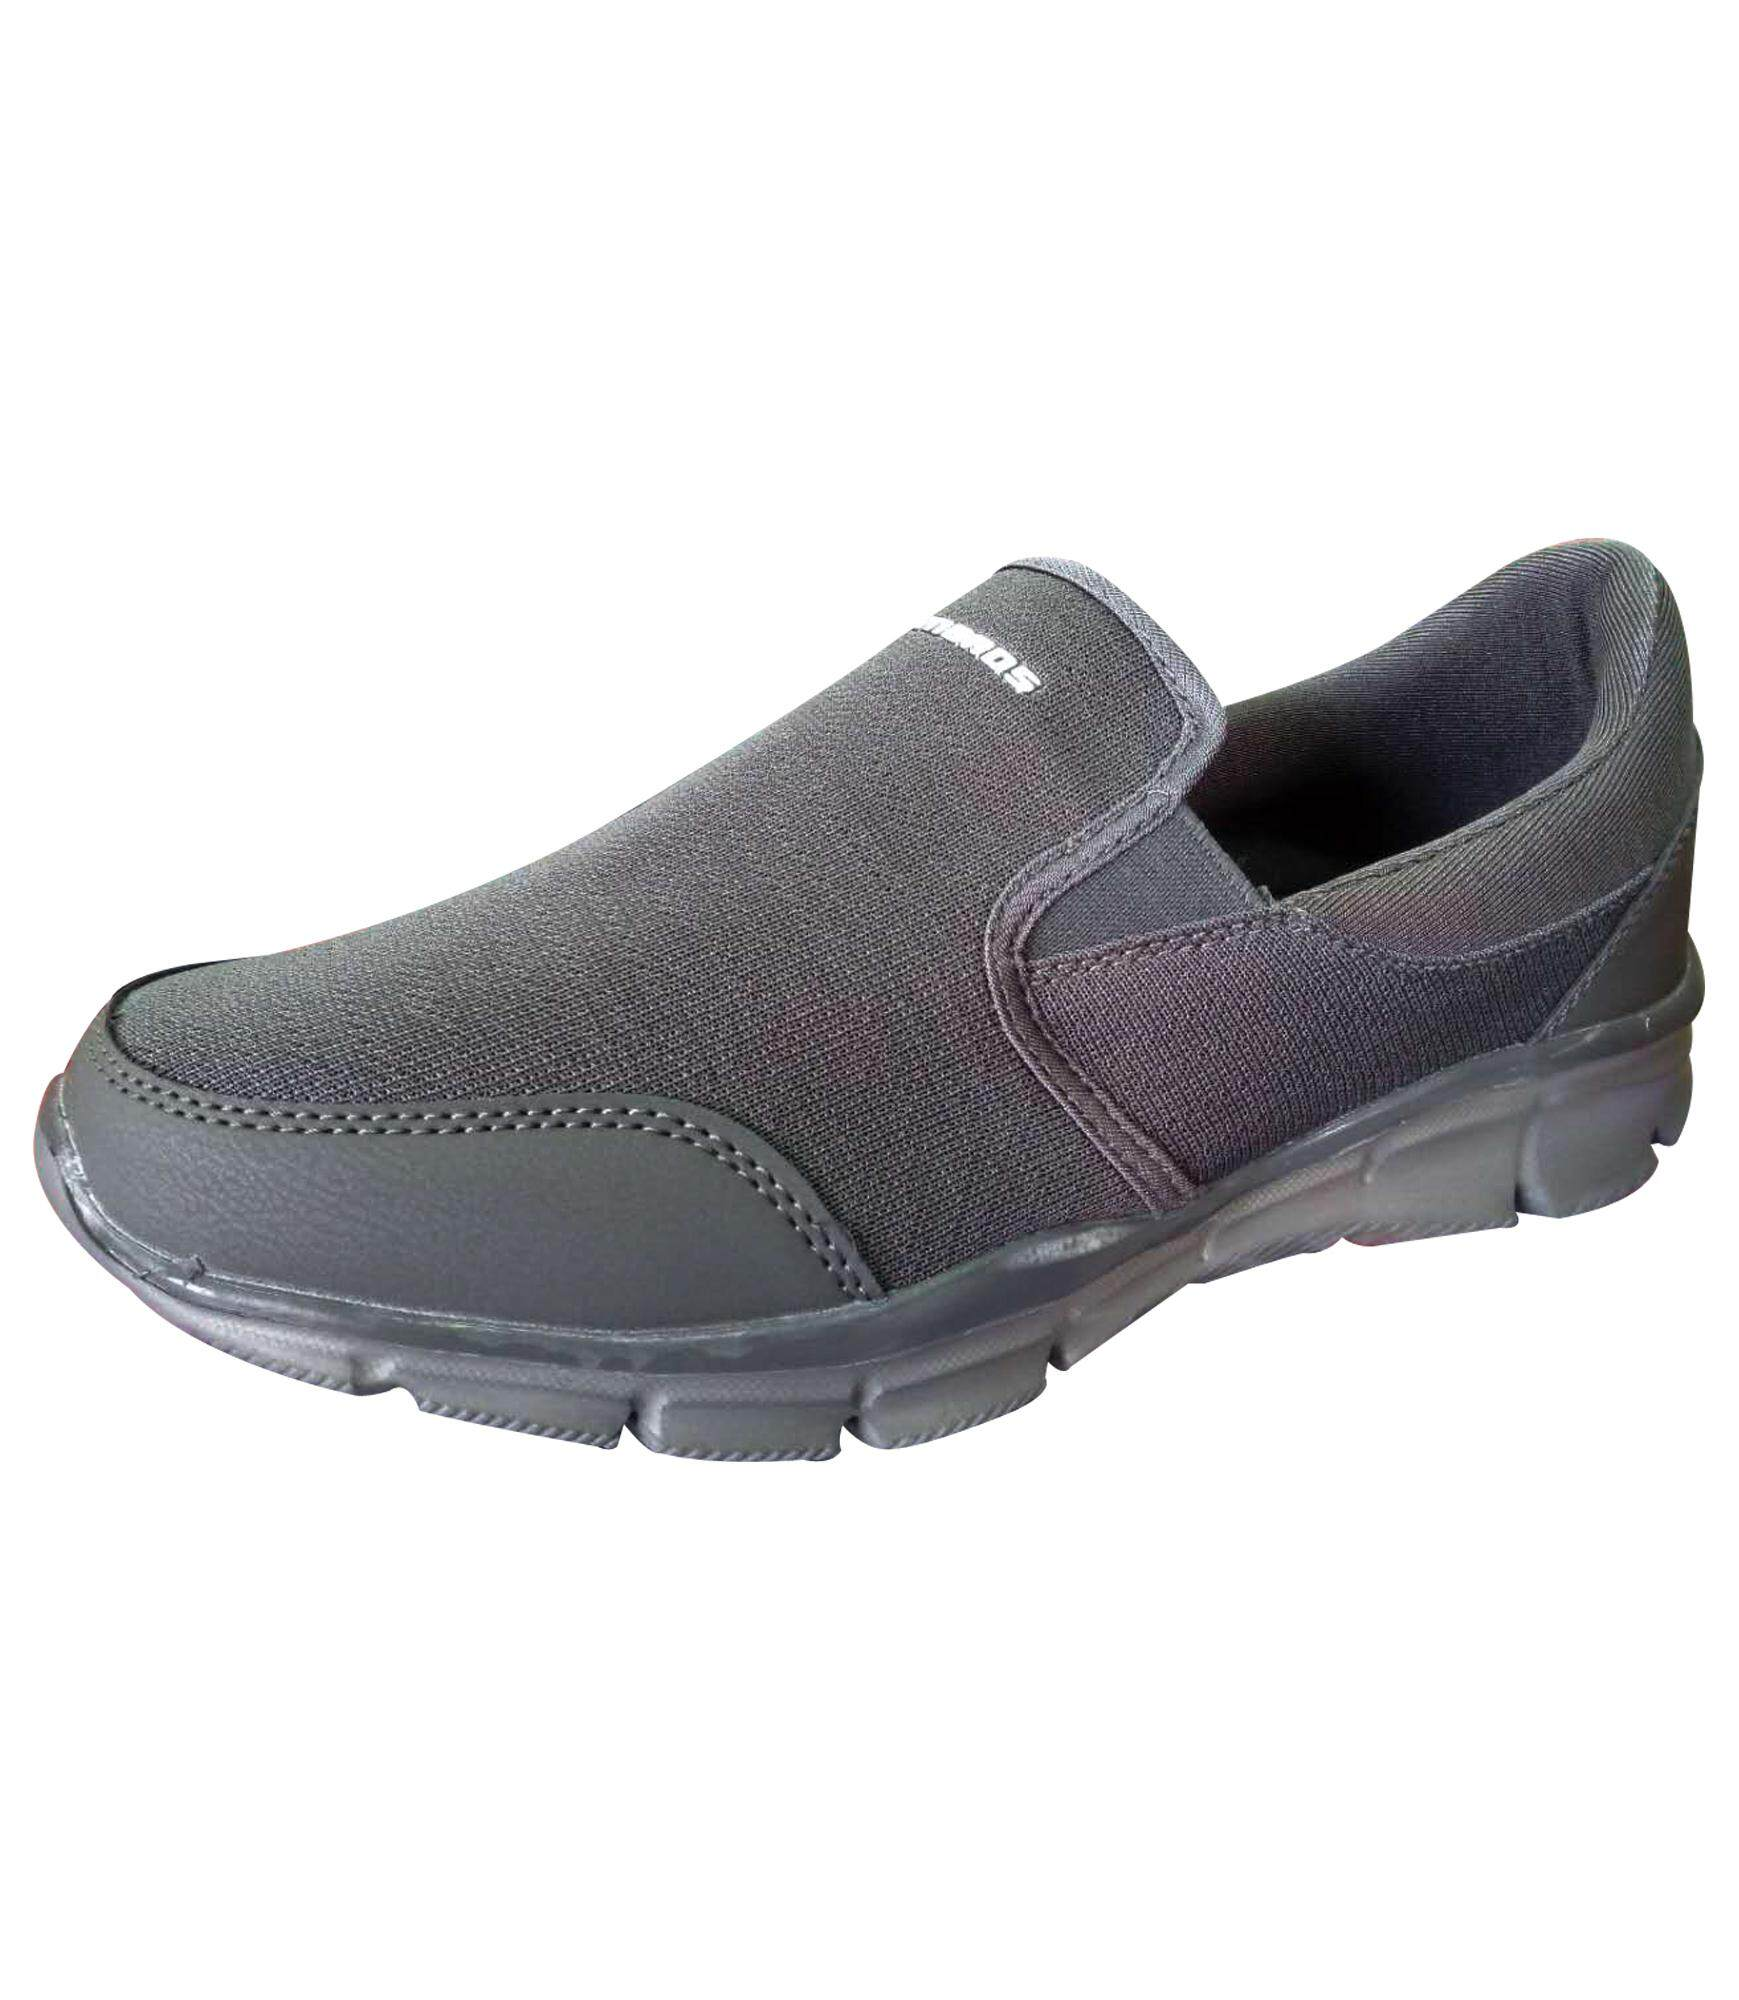 Ambros Glider Men's Casual Walking Shoes - Grey